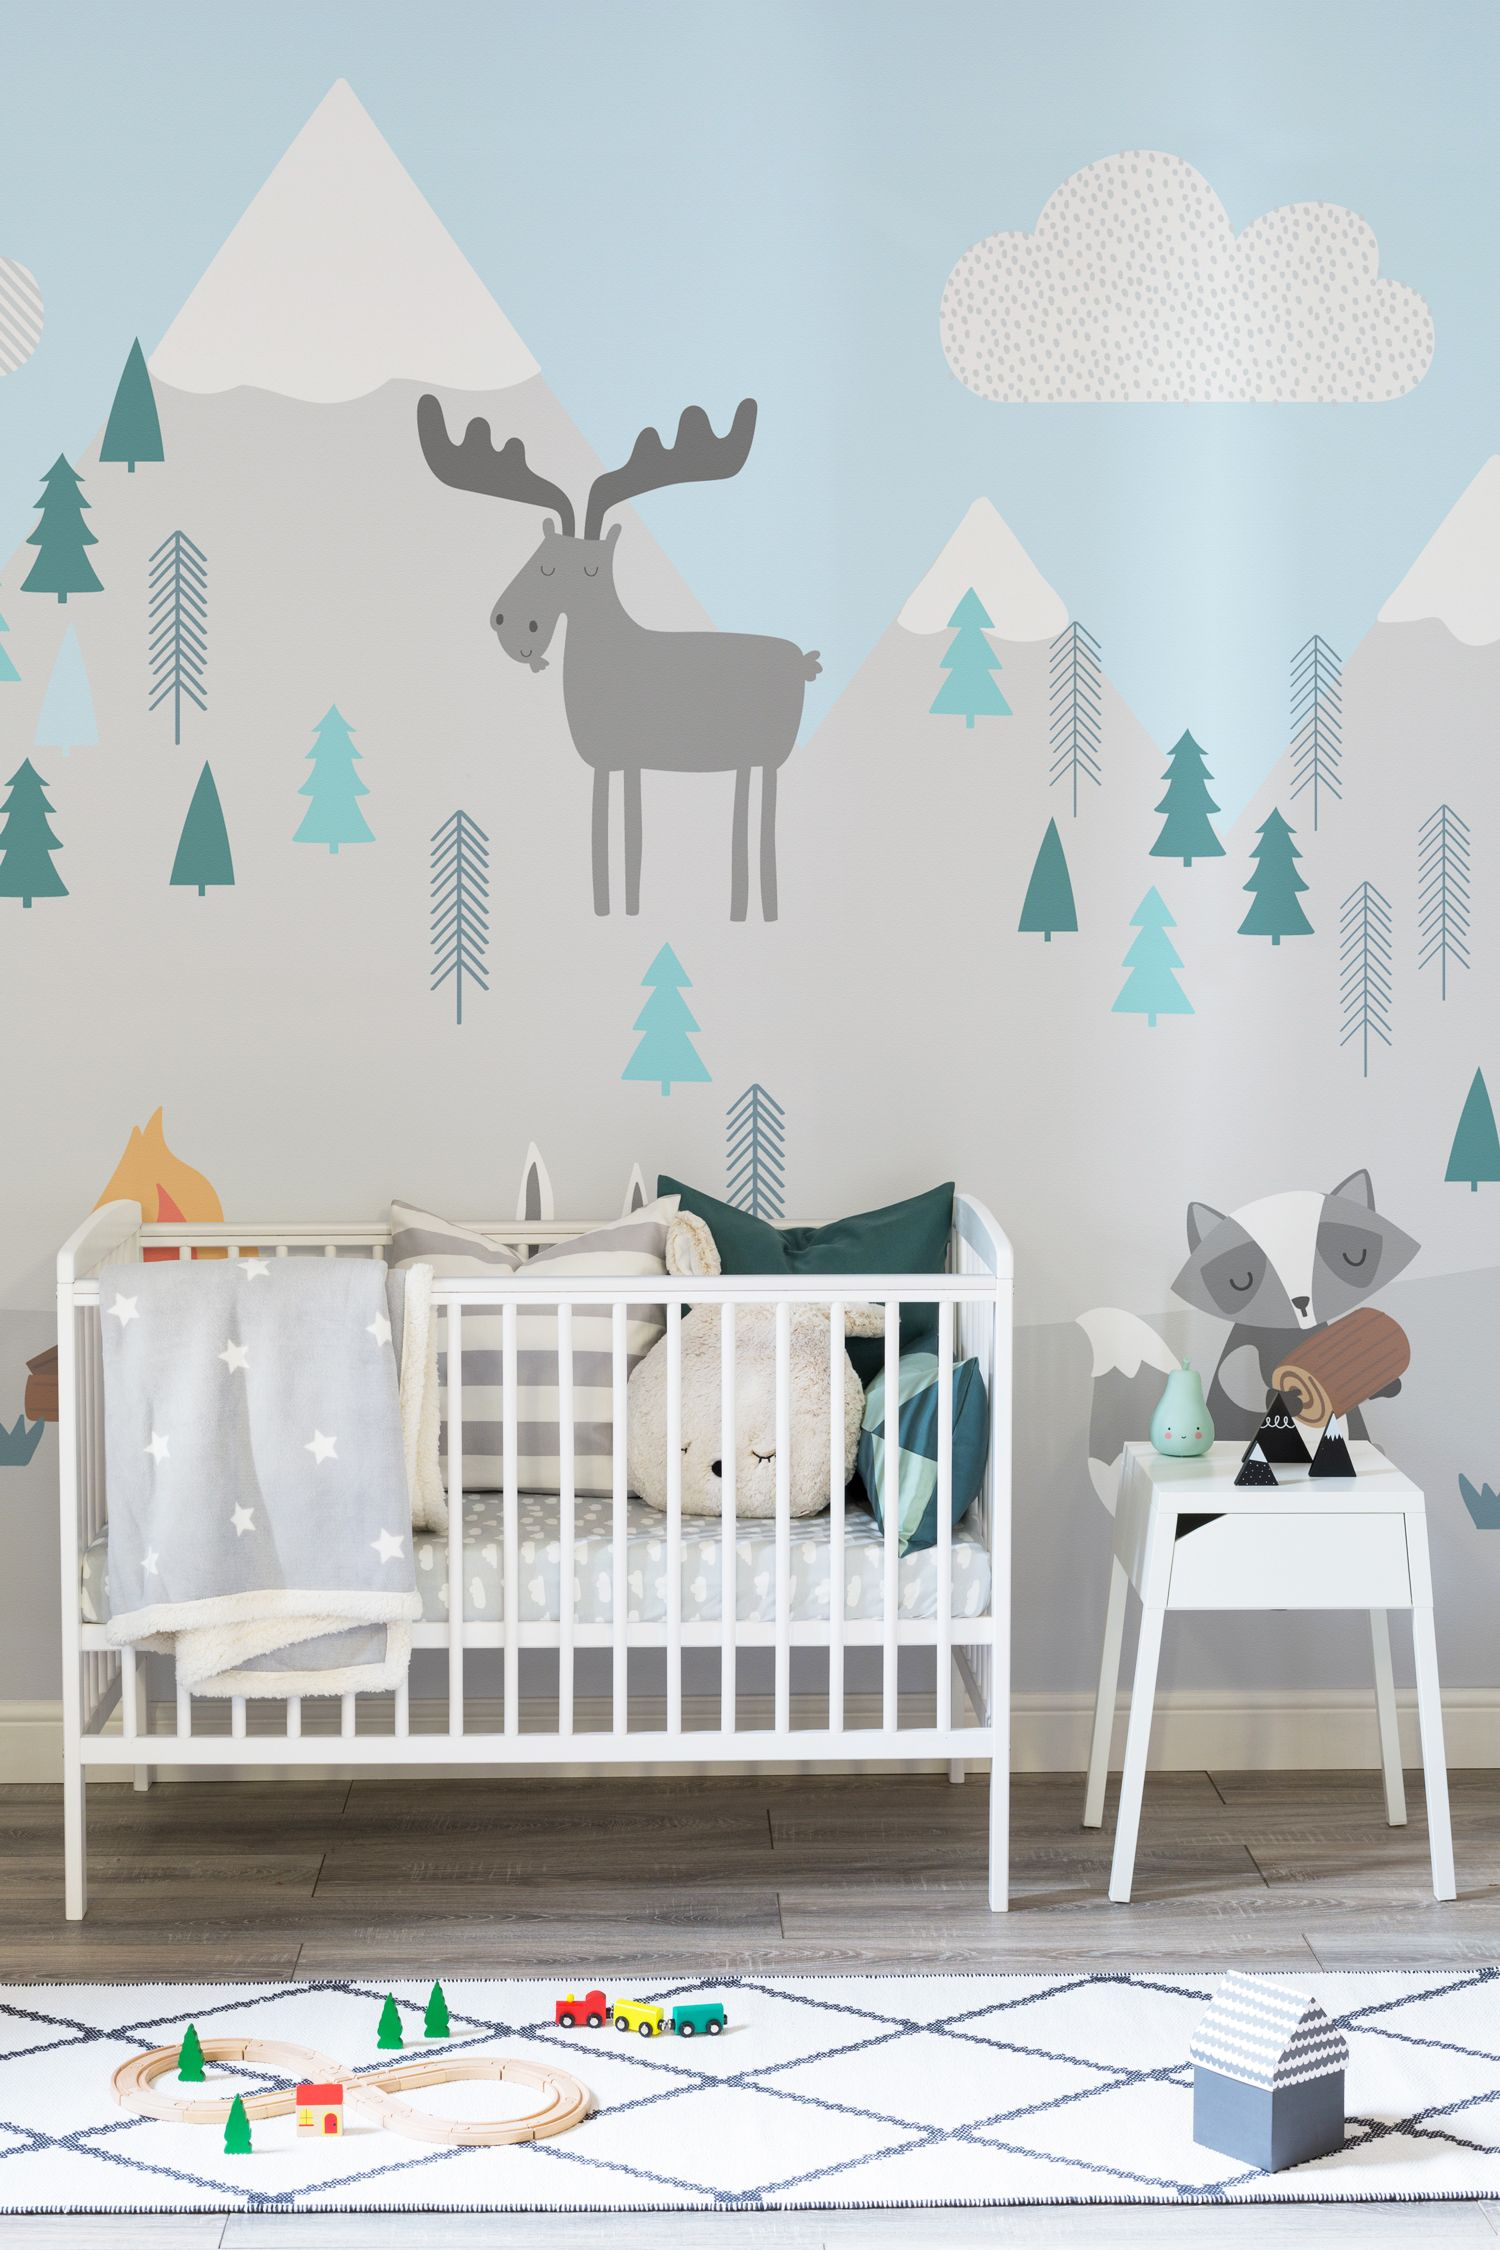 Baby Boy Room Mural Ideas: Kids Mountain Scene Wallpaper Mural